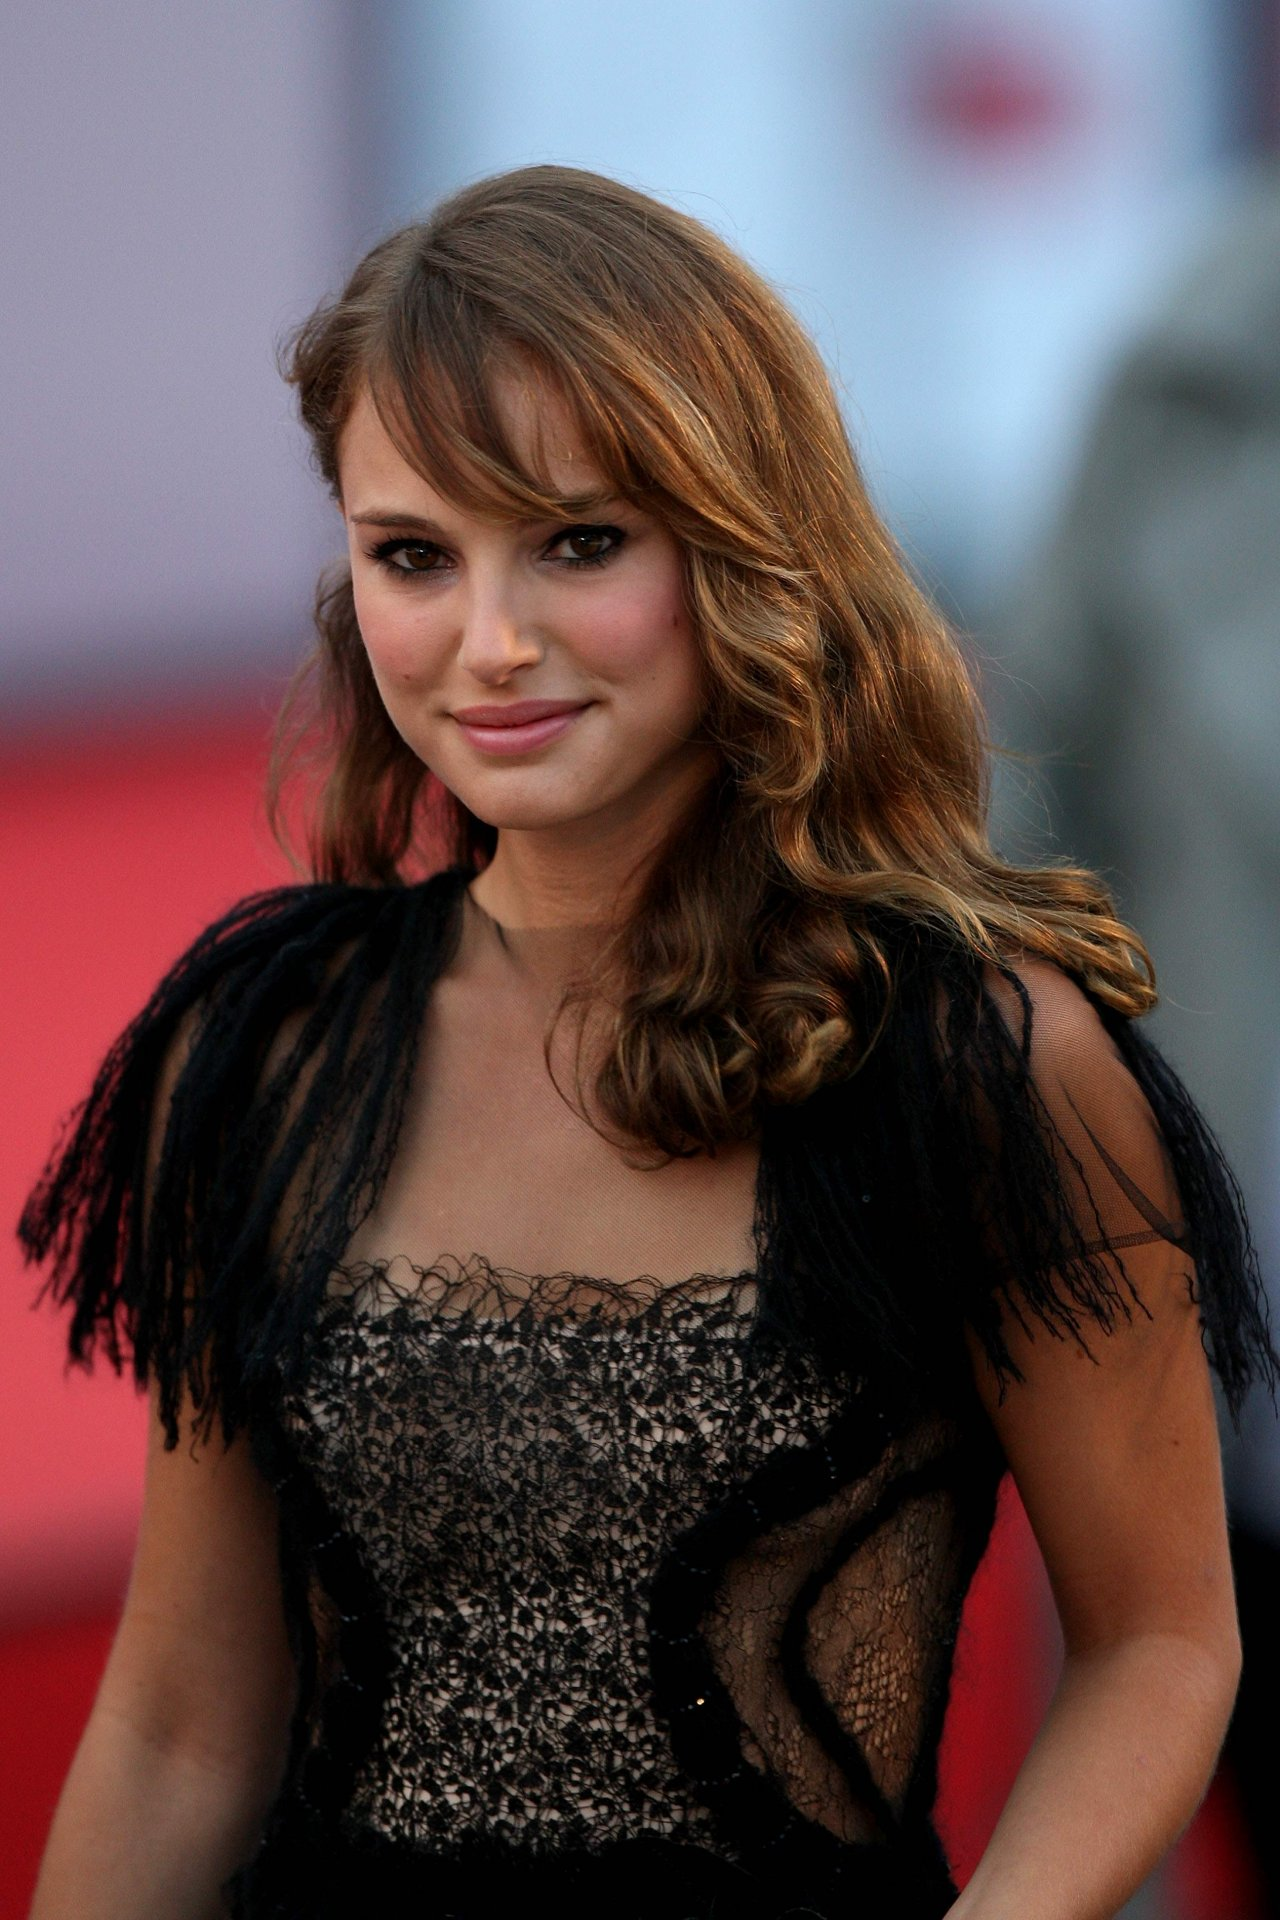 Natalie Portman leaked wallpapers